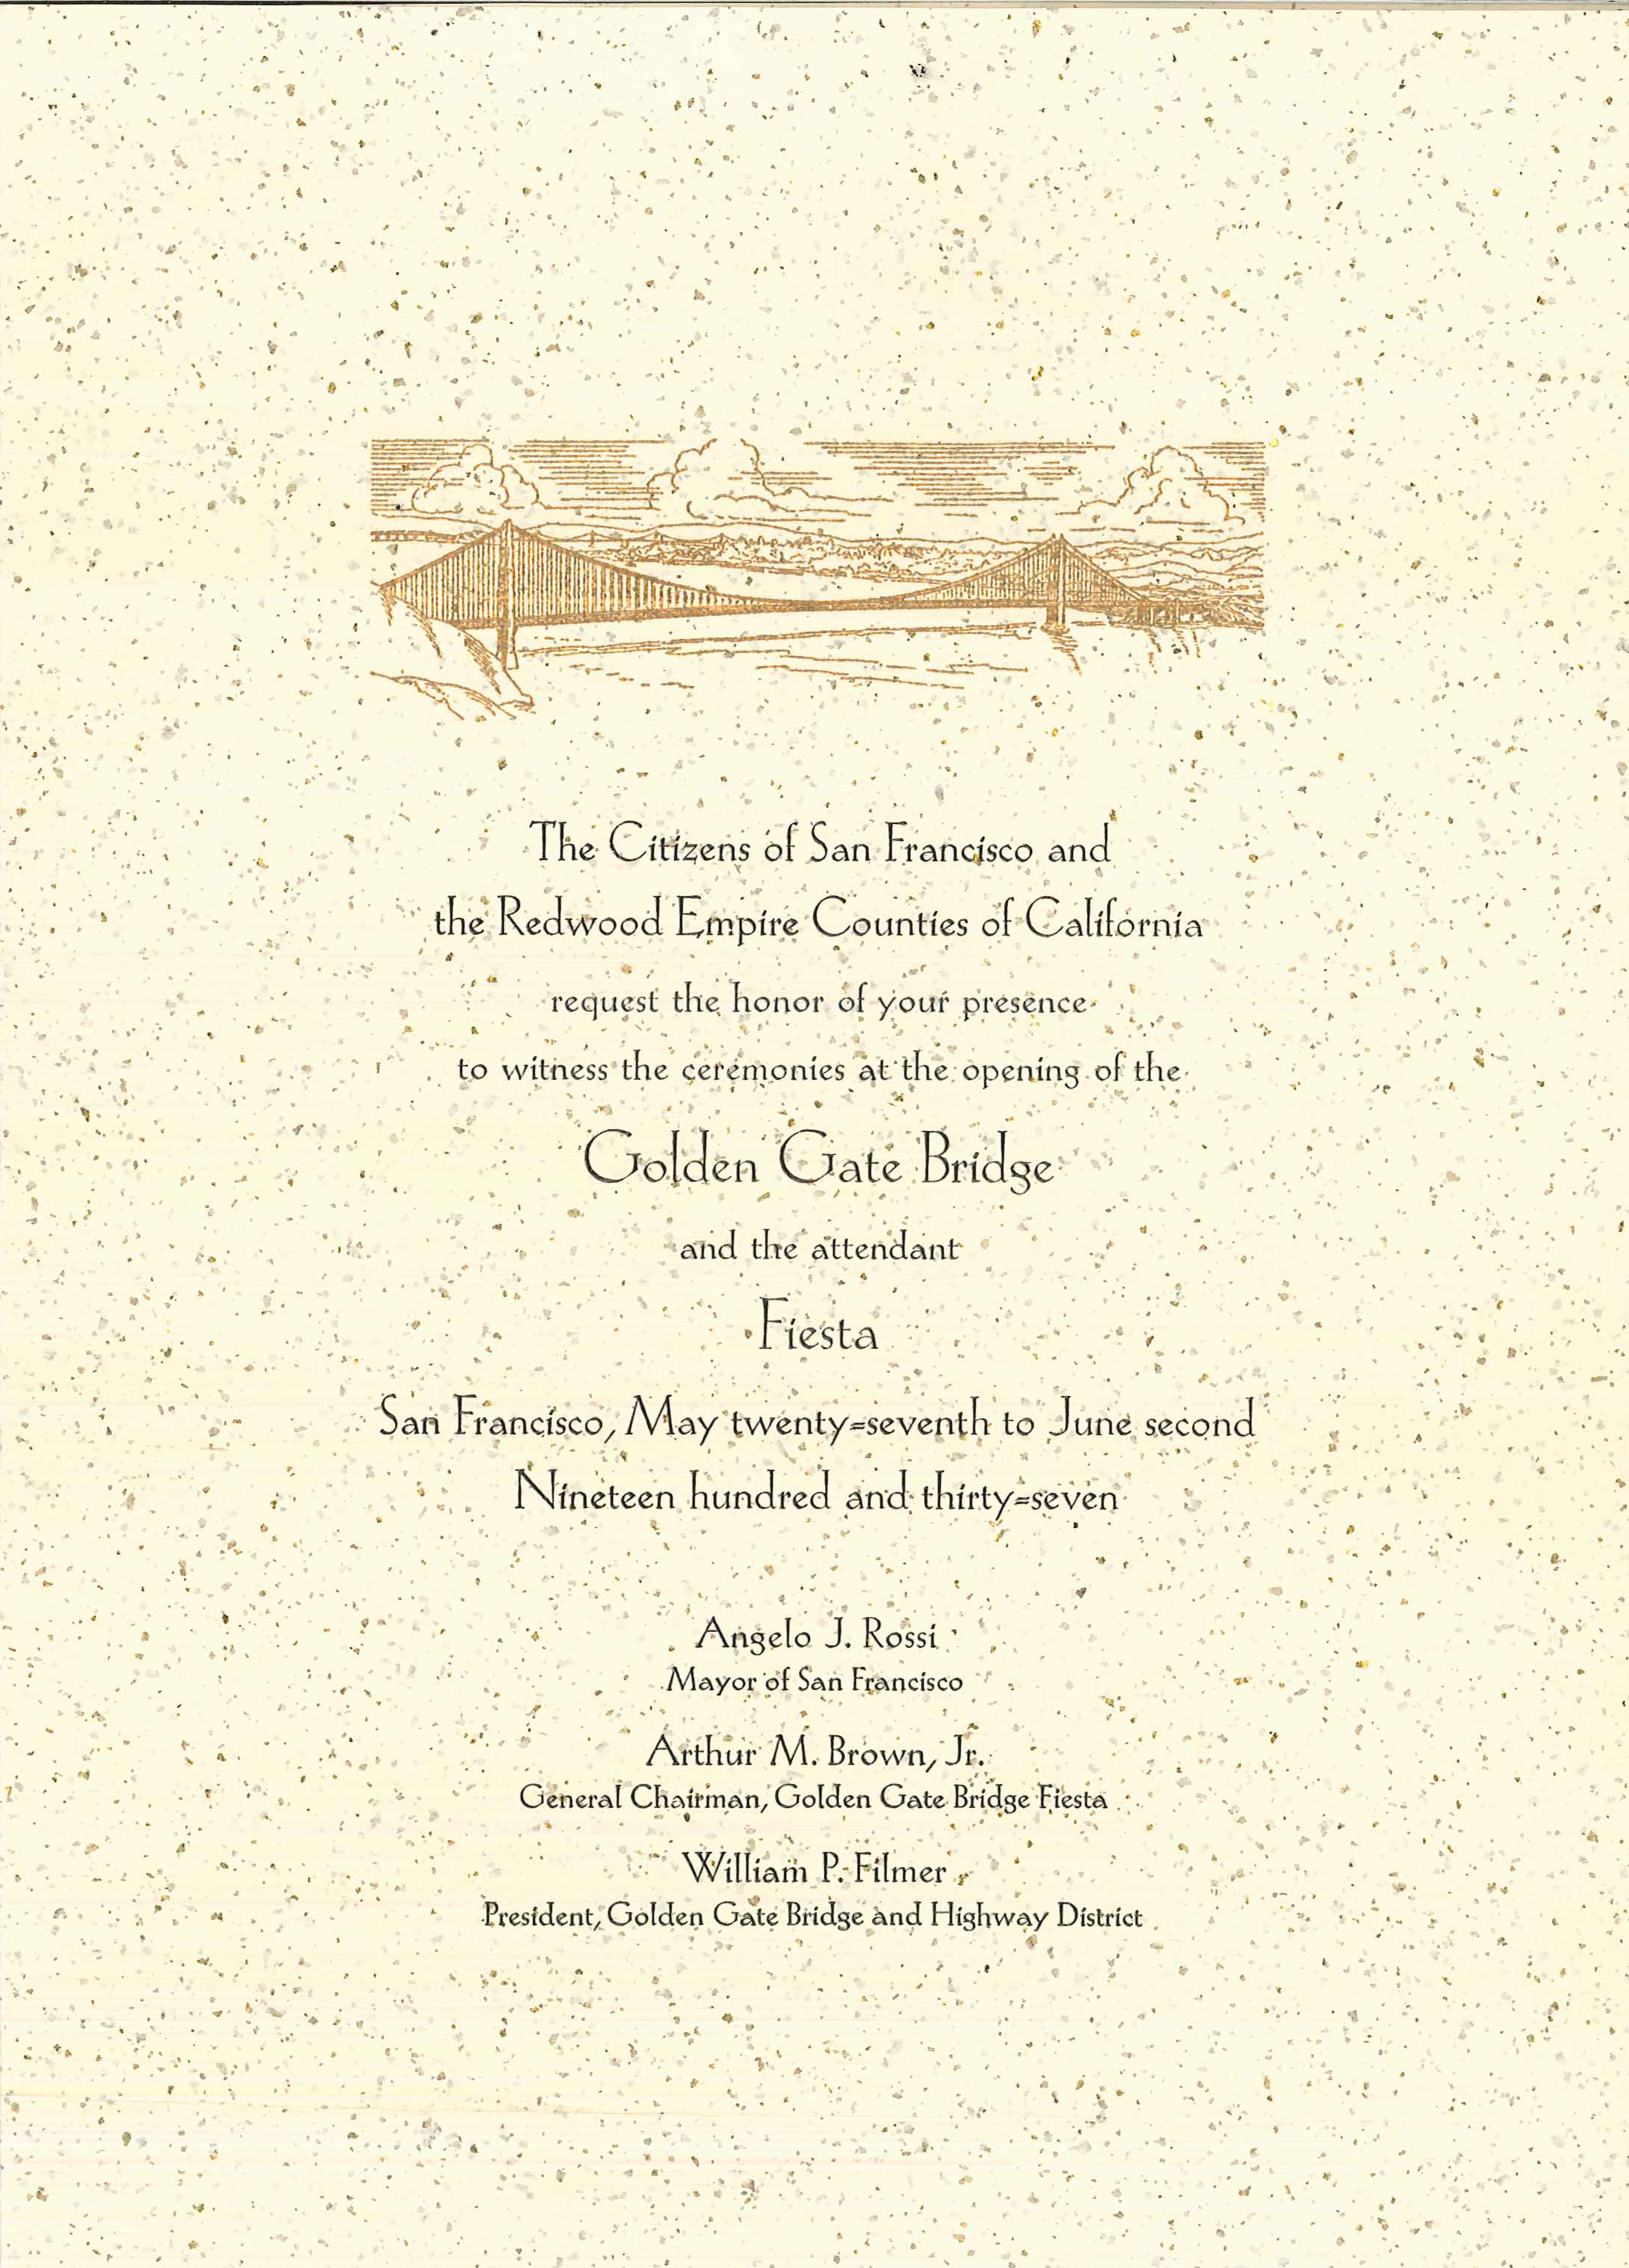 Sample invitation letter for new office opening ceremony military file invitation to golden gate bridge opening 1937 jpg sample invitation letter for new office opening ceremony stopboris Images